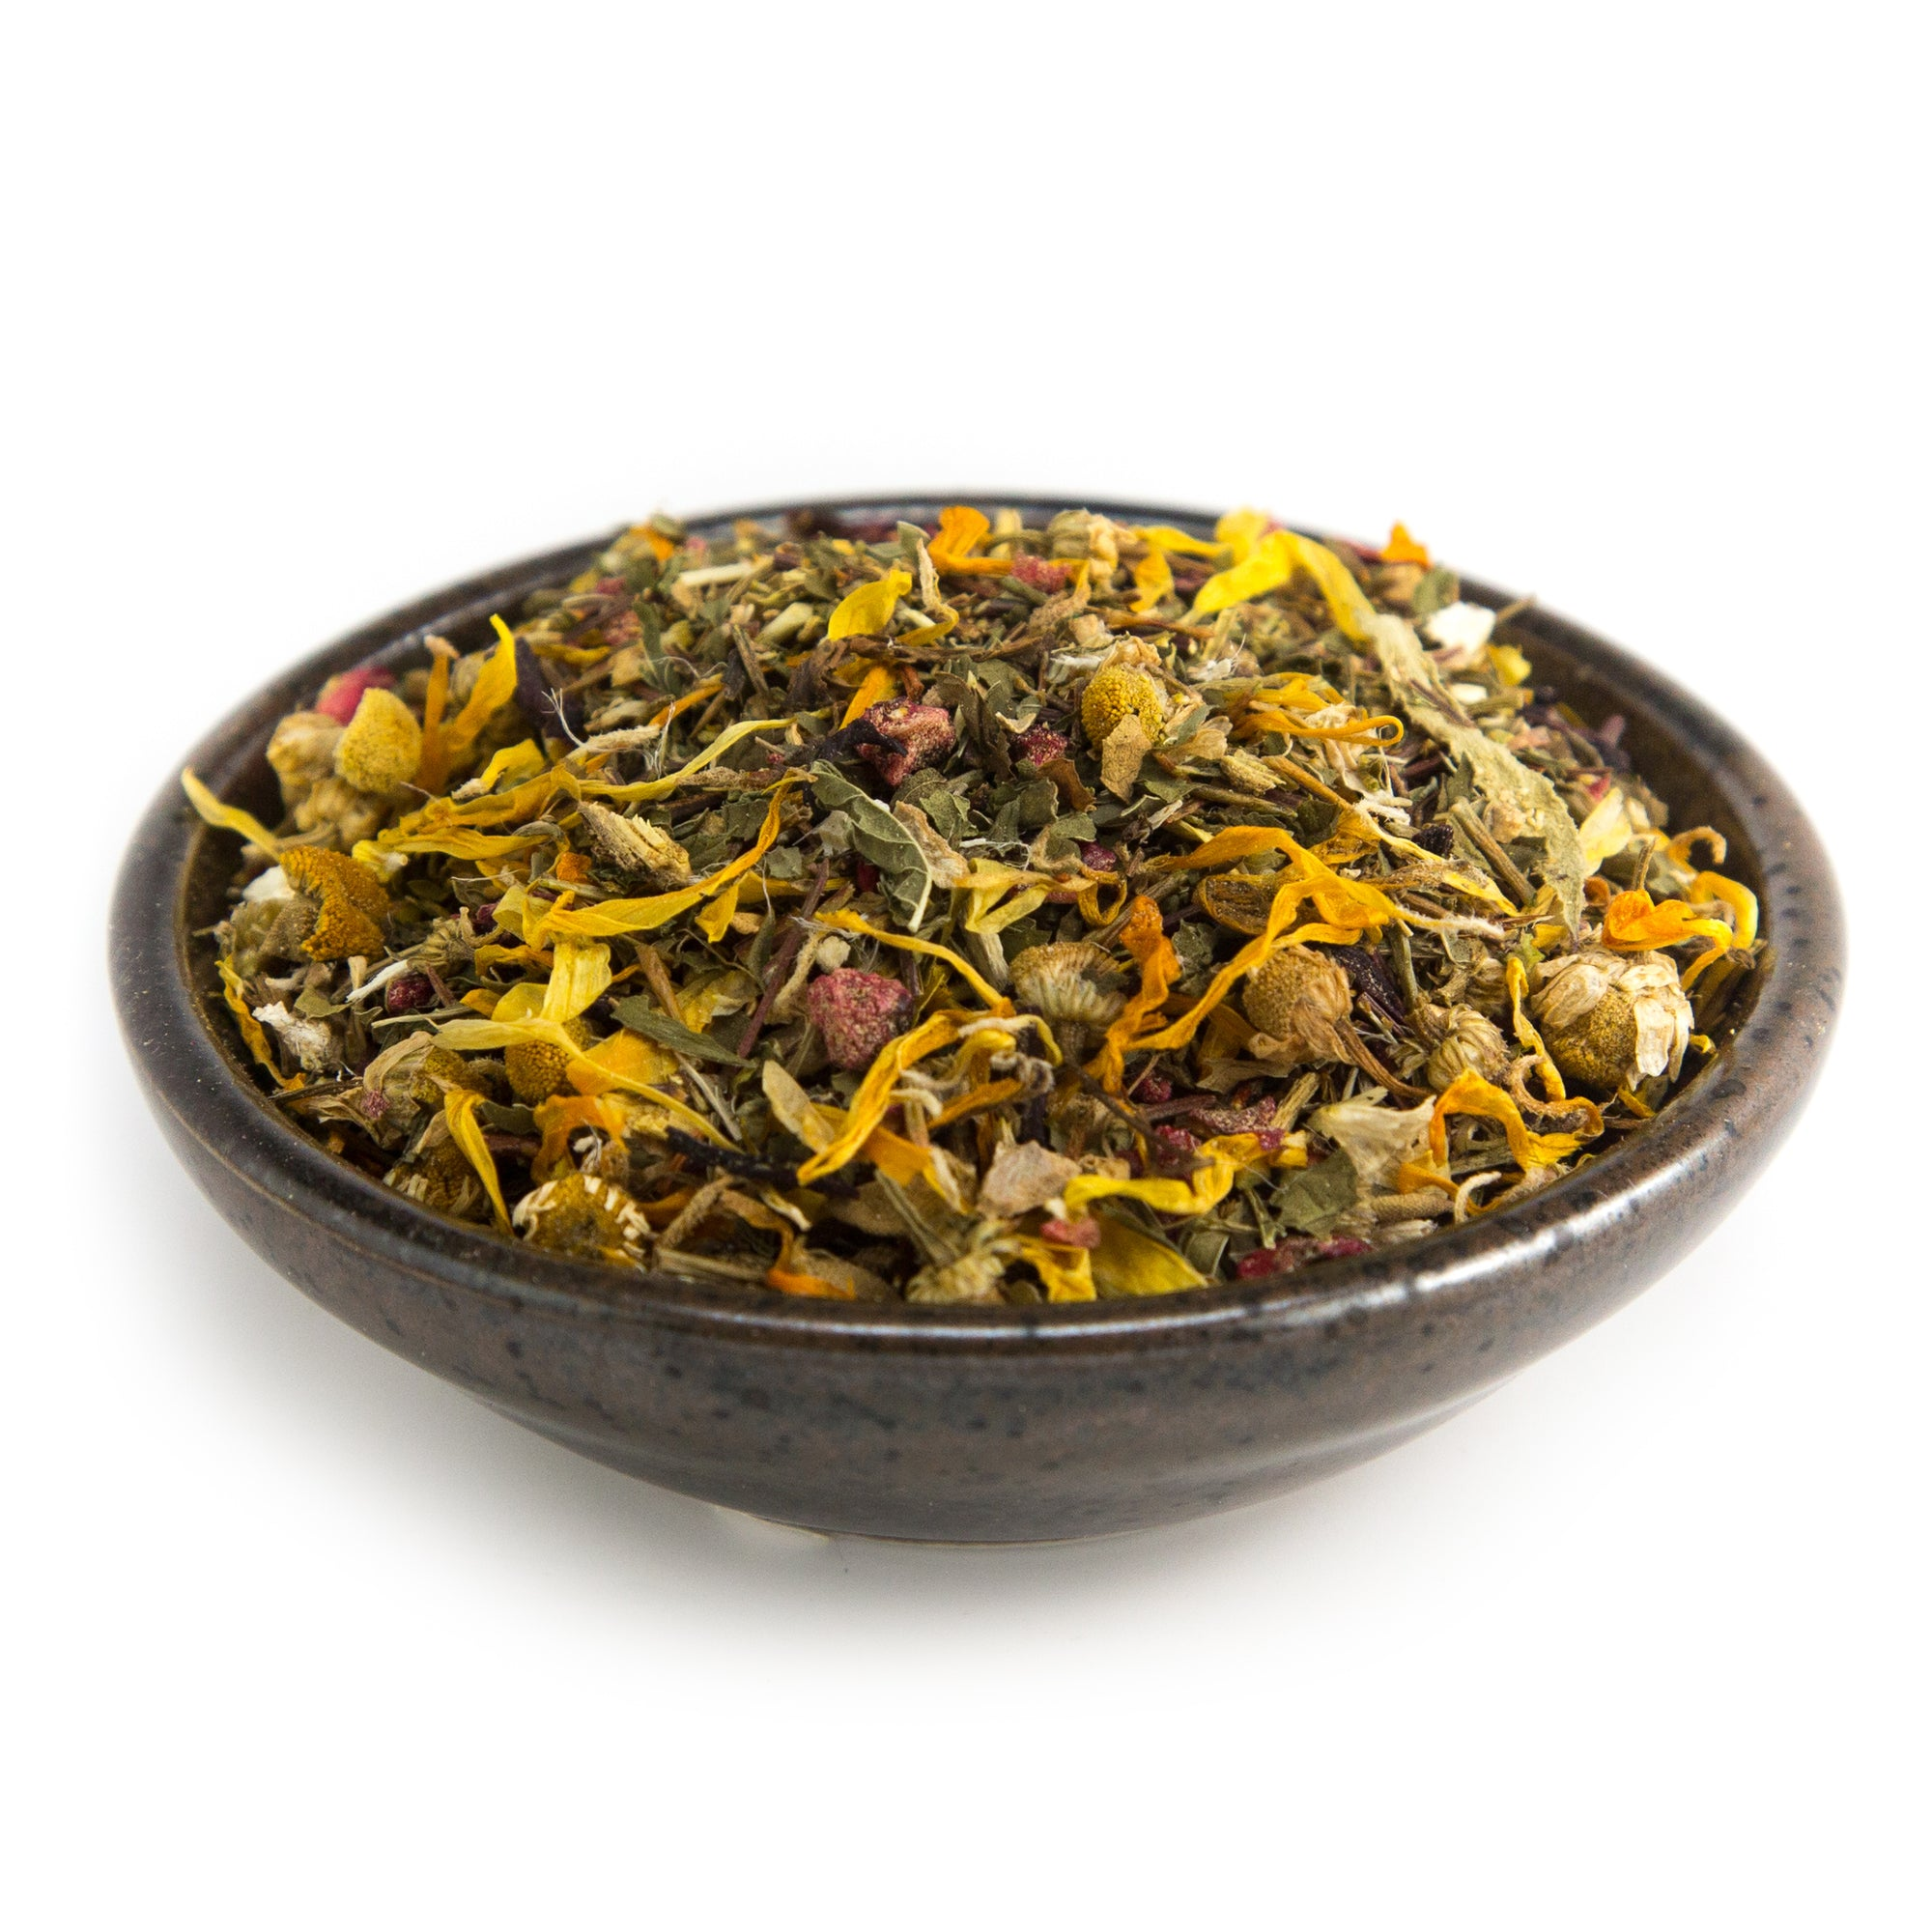 Sore Throat Tea - Tea - Red Stick Spice Company